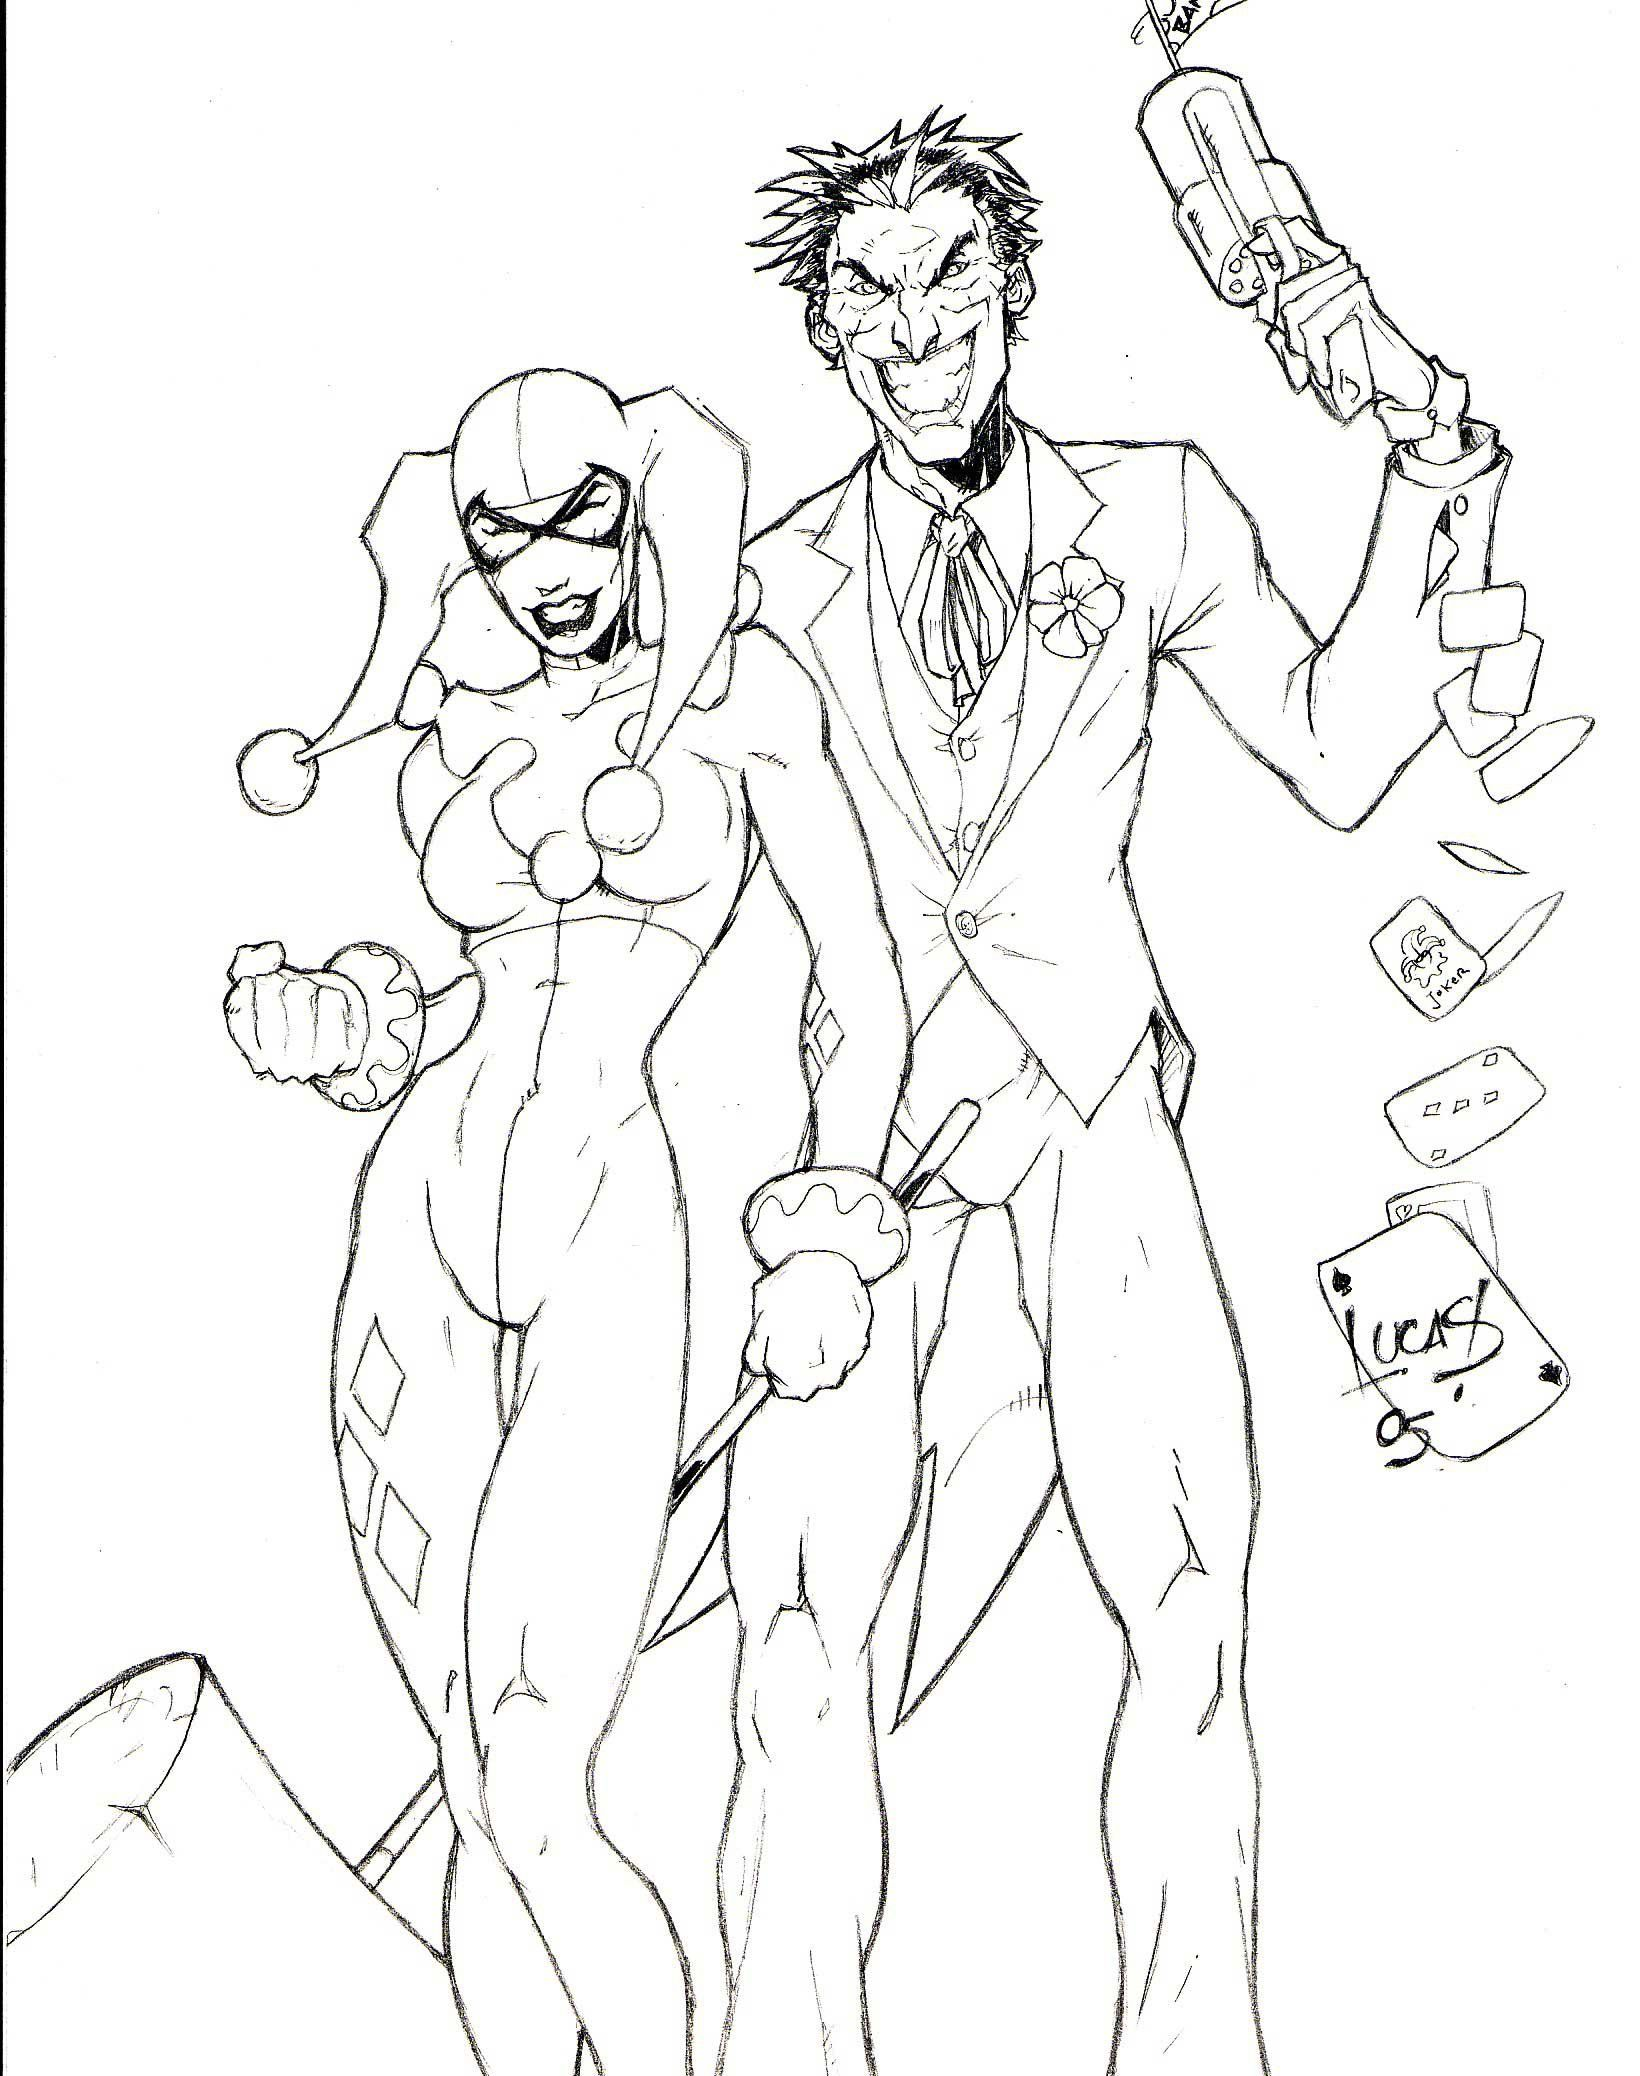 joker and harley quinn coloring pages Harley quinn coloring pages to download and print for free  joker and harley quinn coloring pages